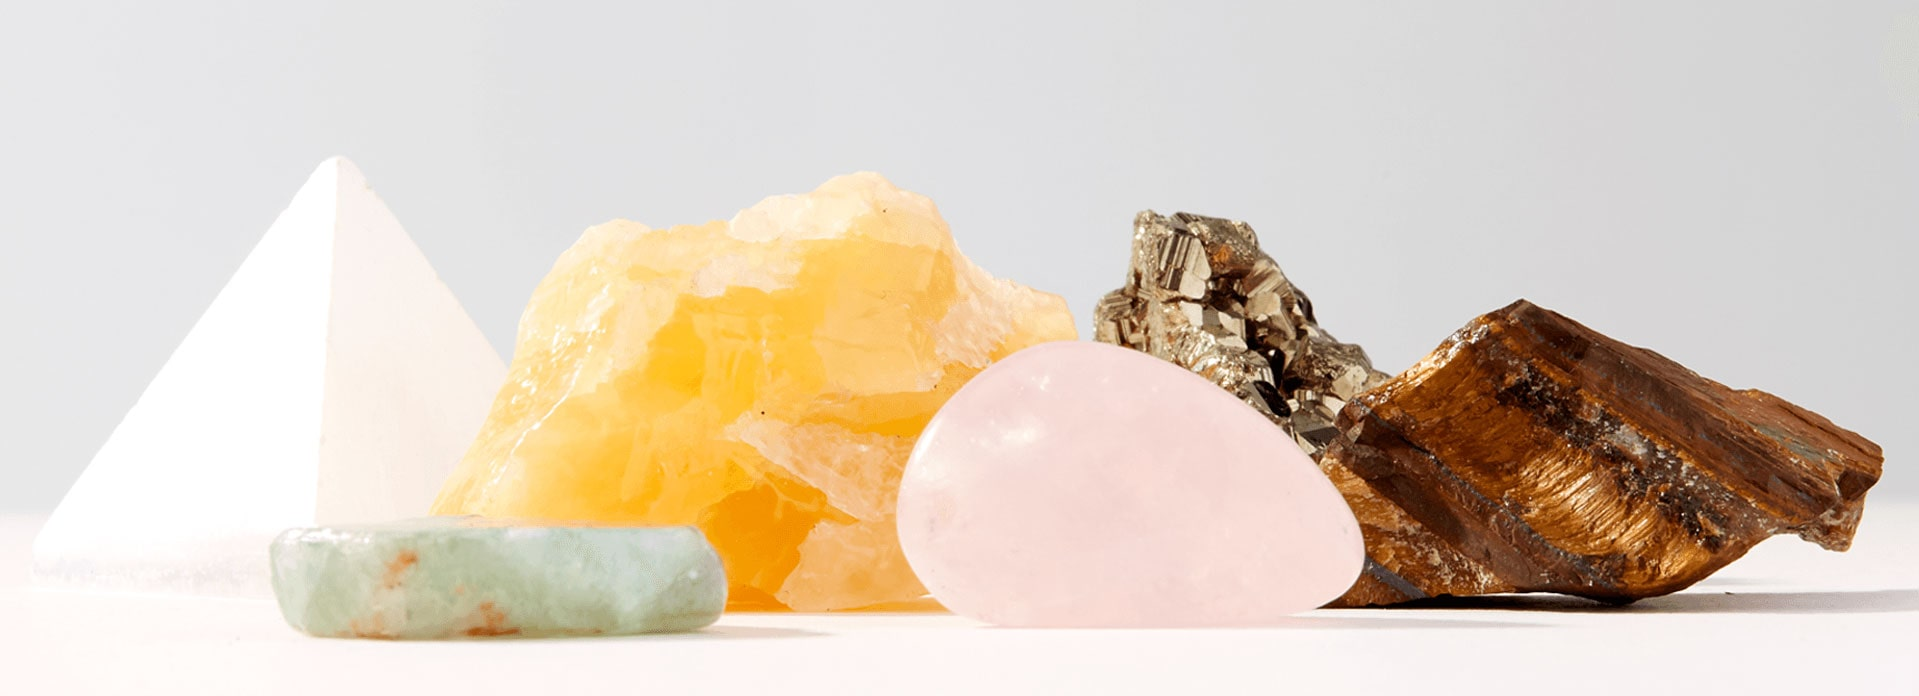 A side view of four crystals on a table.